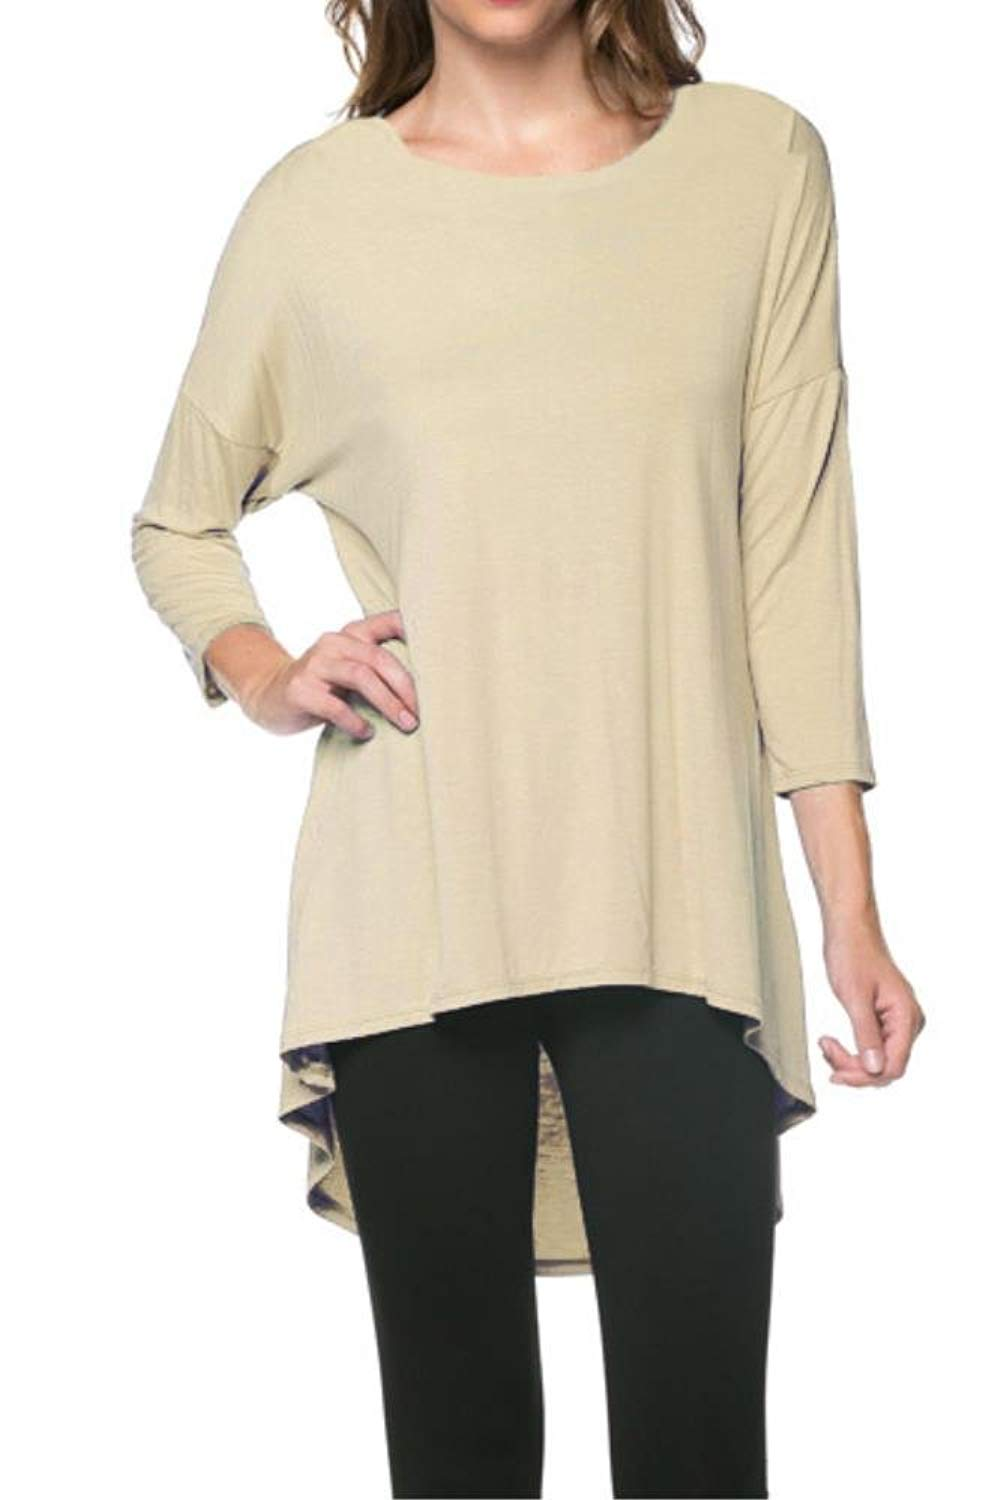 9361810cde5511 Get Quotations · Simlu Tunics For Women Rayon Span Long Tunic Sweater High  Low Tops Made In USA